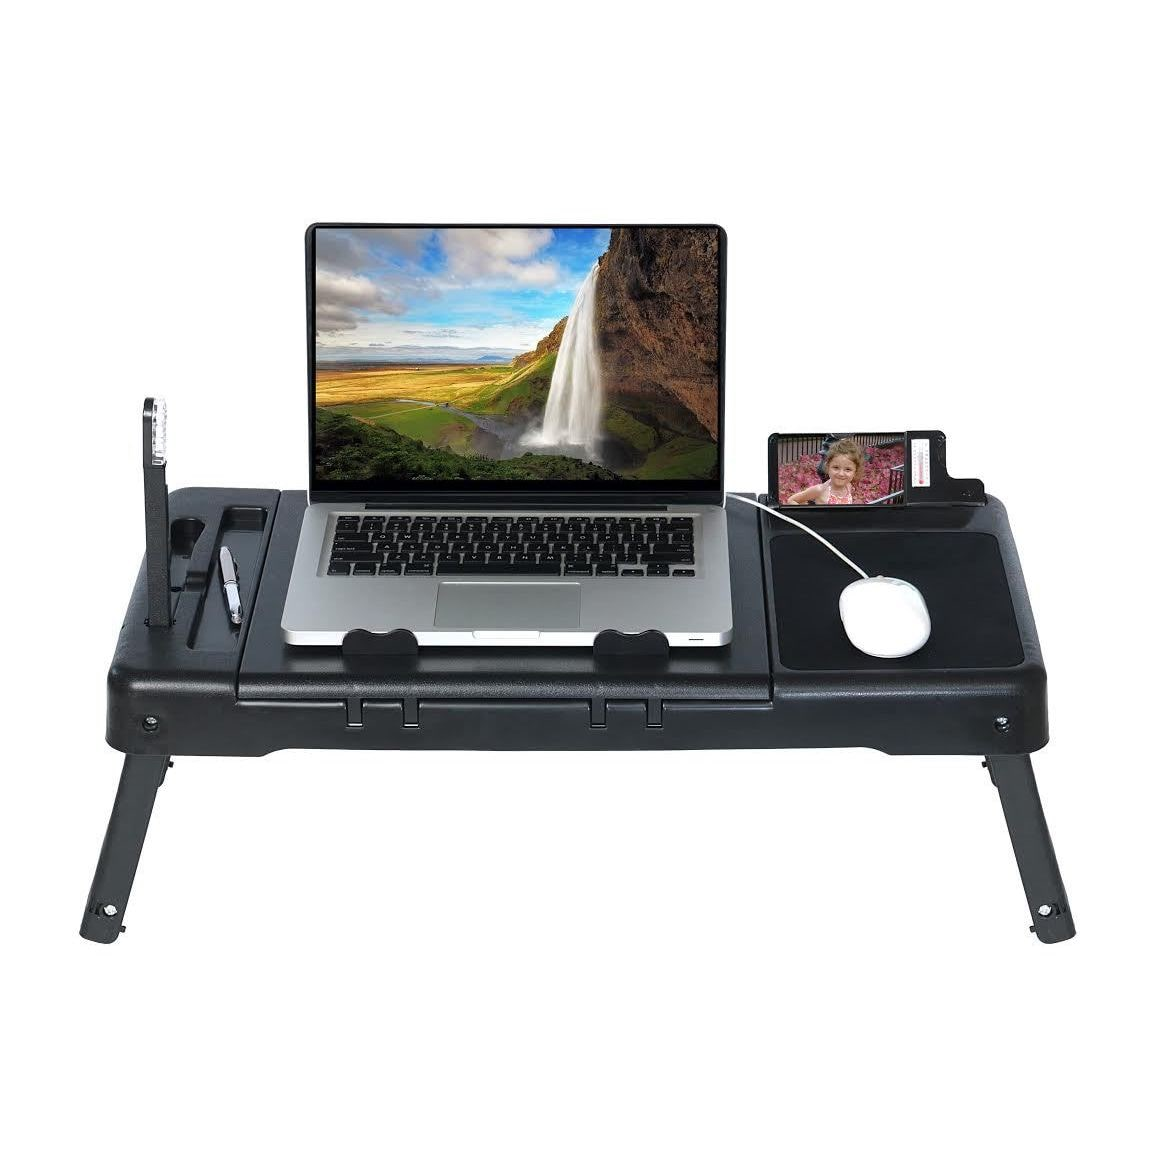 DG Sports Laptop Table Stand with Repositionable LED Light